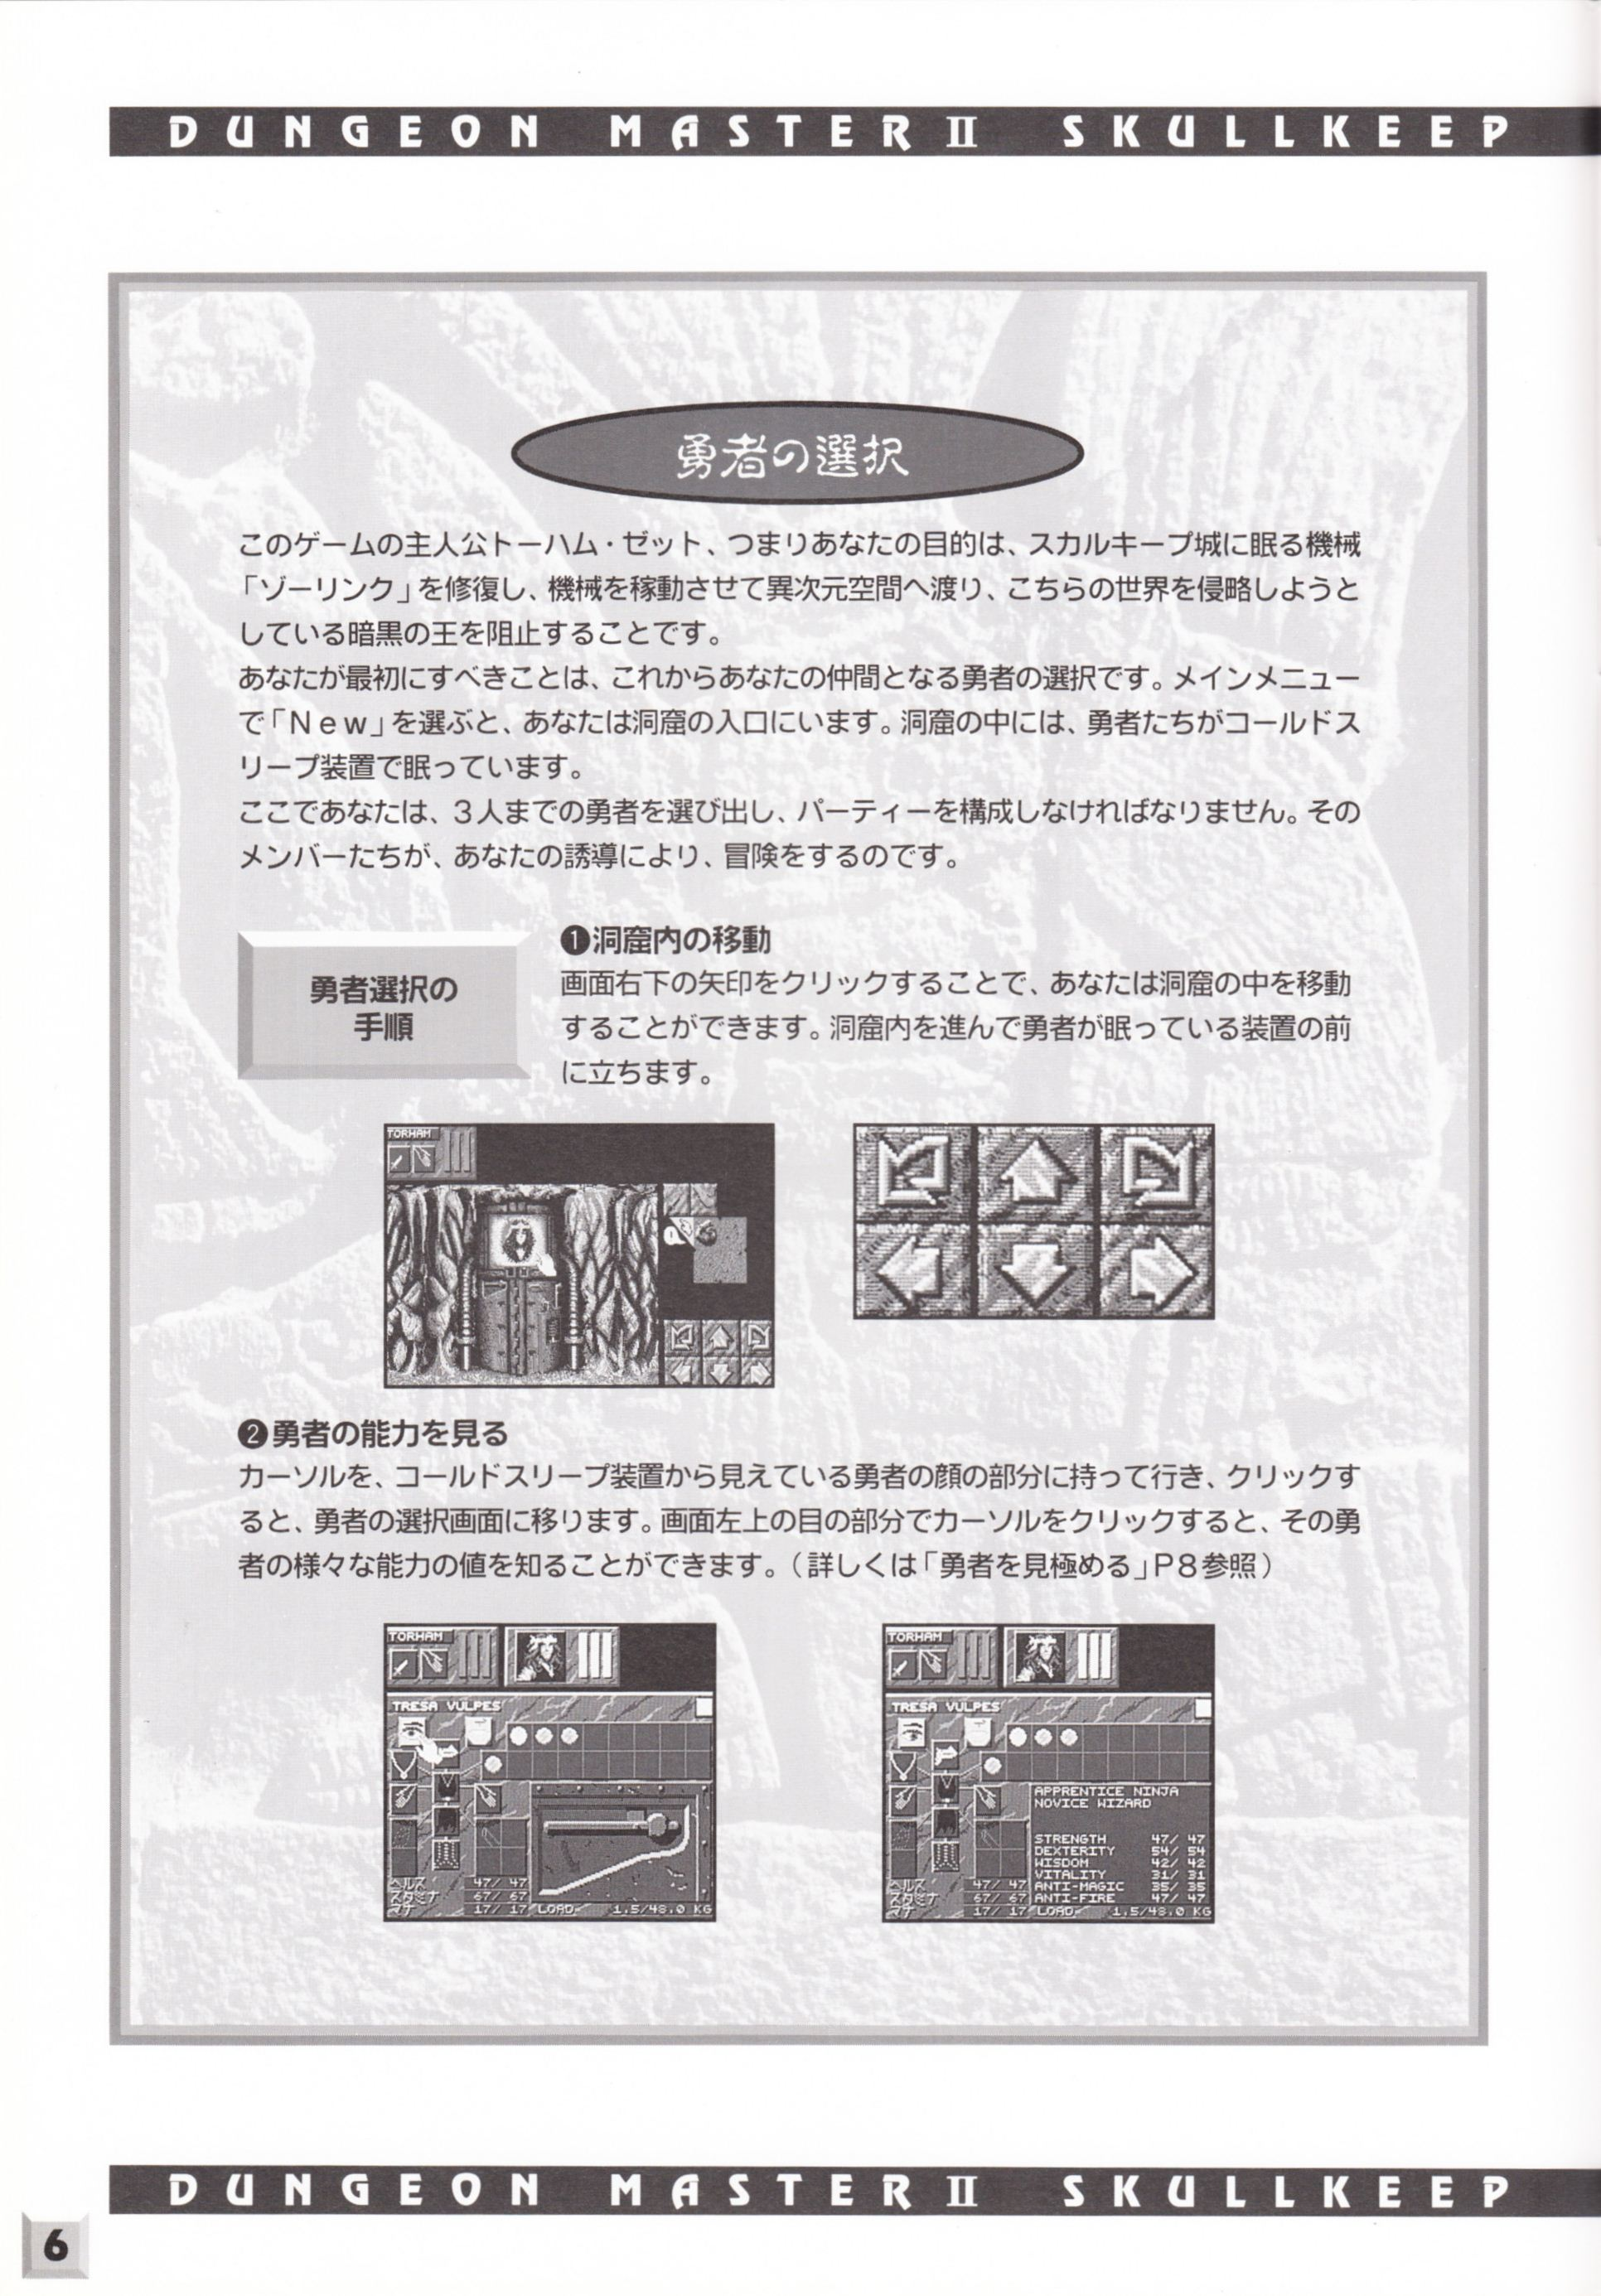 Game - Dungeon Master II - JP - PC-9801 - 3.5-inch - An Operation Manual - Page 008 - Scan